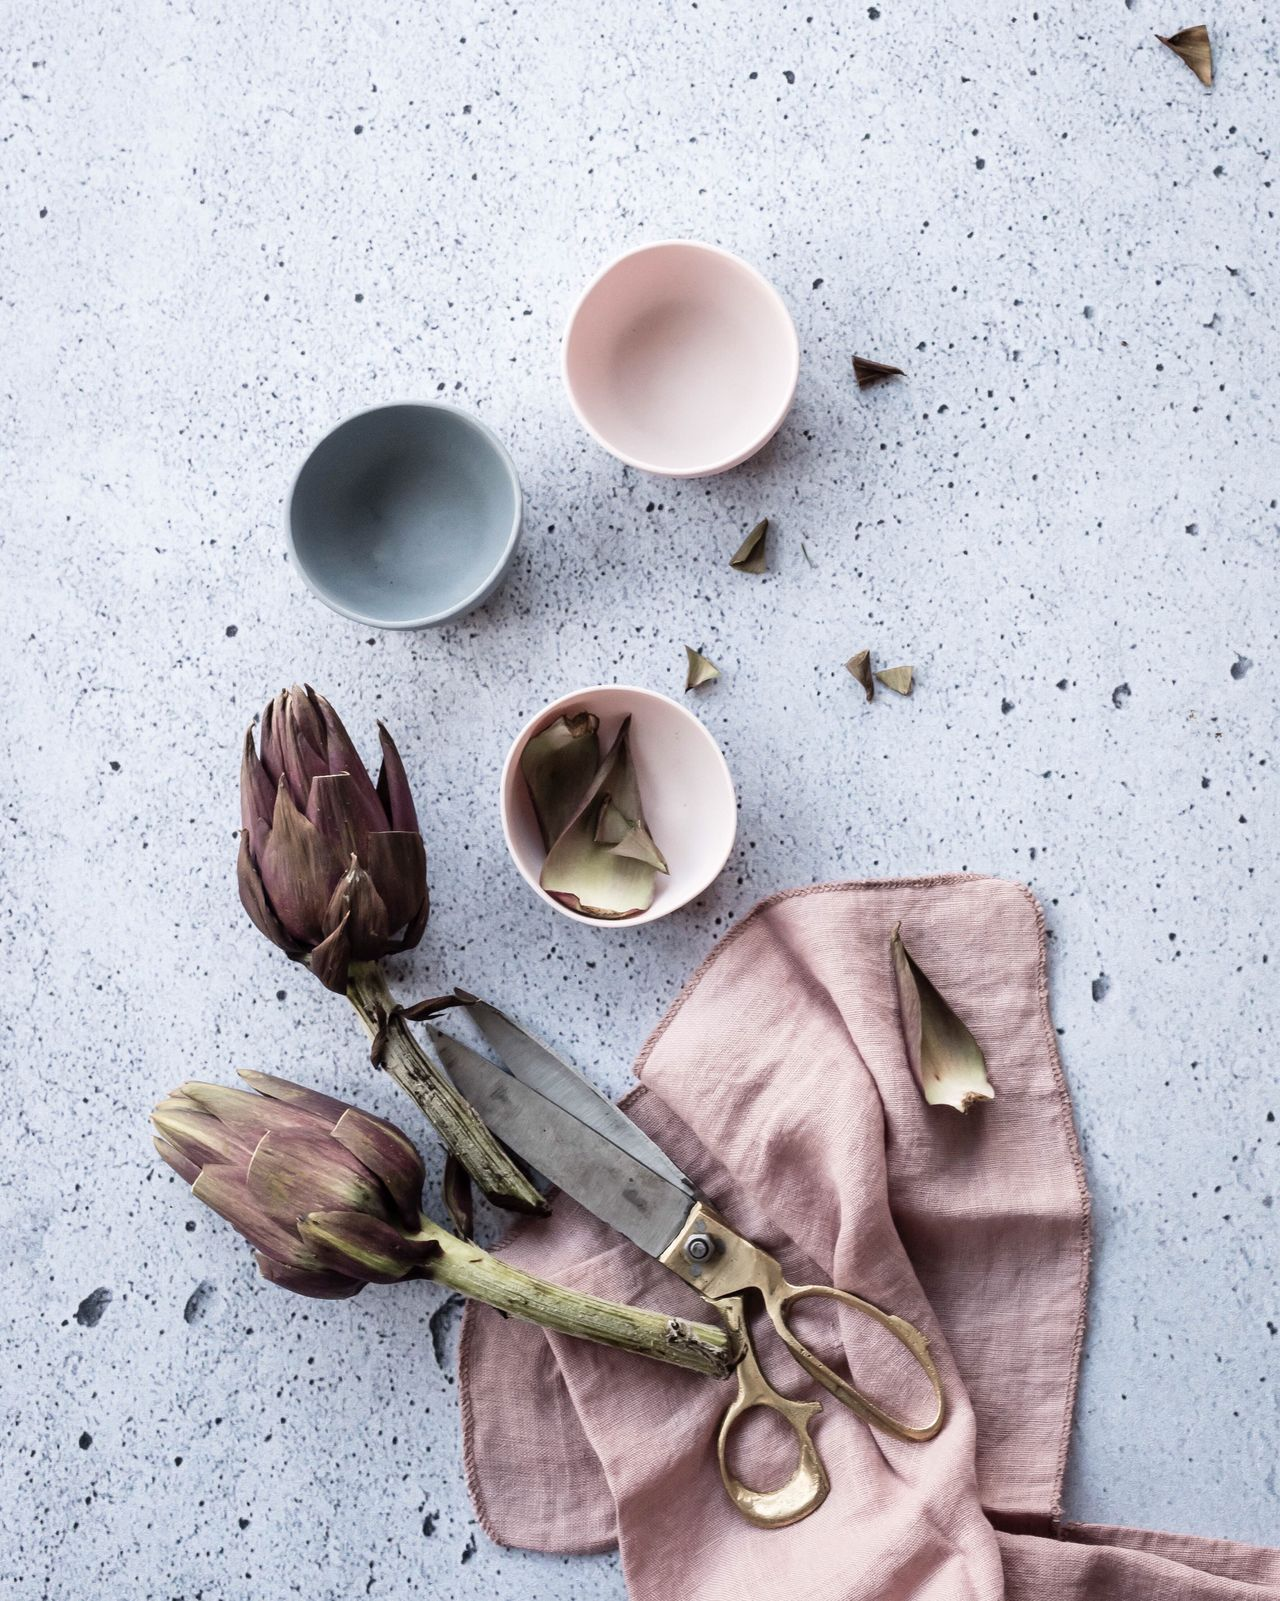 Artichokes TheWeekOnEyeEM Styling Photography Food And Drink Studio Shot No People Ingredient Lifestyle Photography Foodphotography Table On The Table Home Directly Above From Above  Tablescene Cooking Cooking At Home Dinner Preparation  Porcelain  Muted Tones